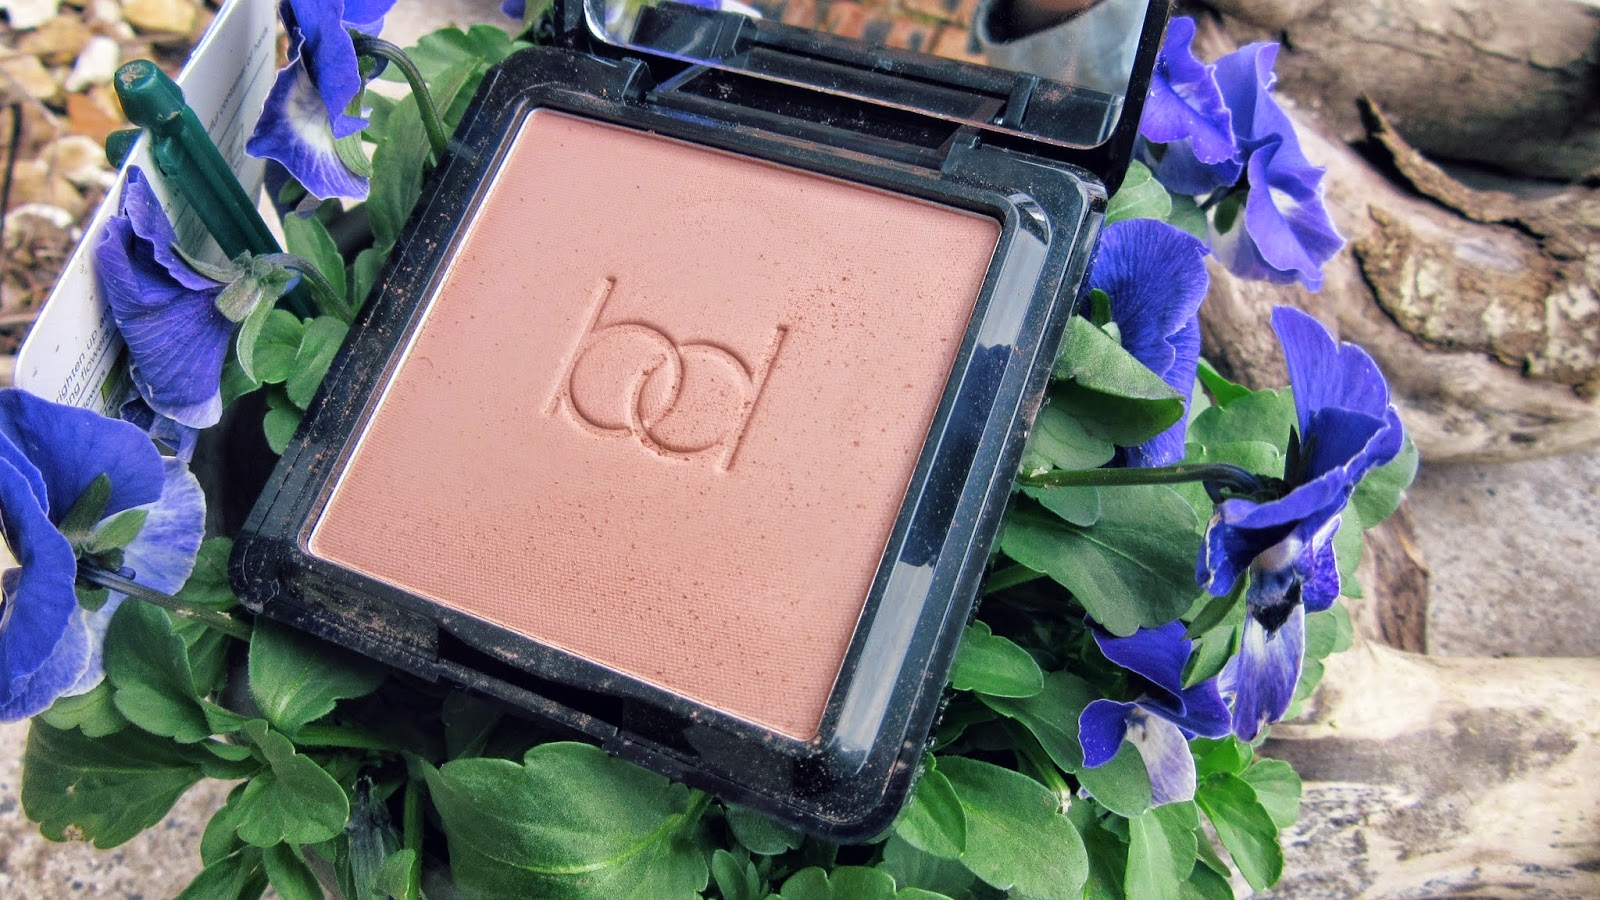 New Bronzer, Contouring, Pale Girls